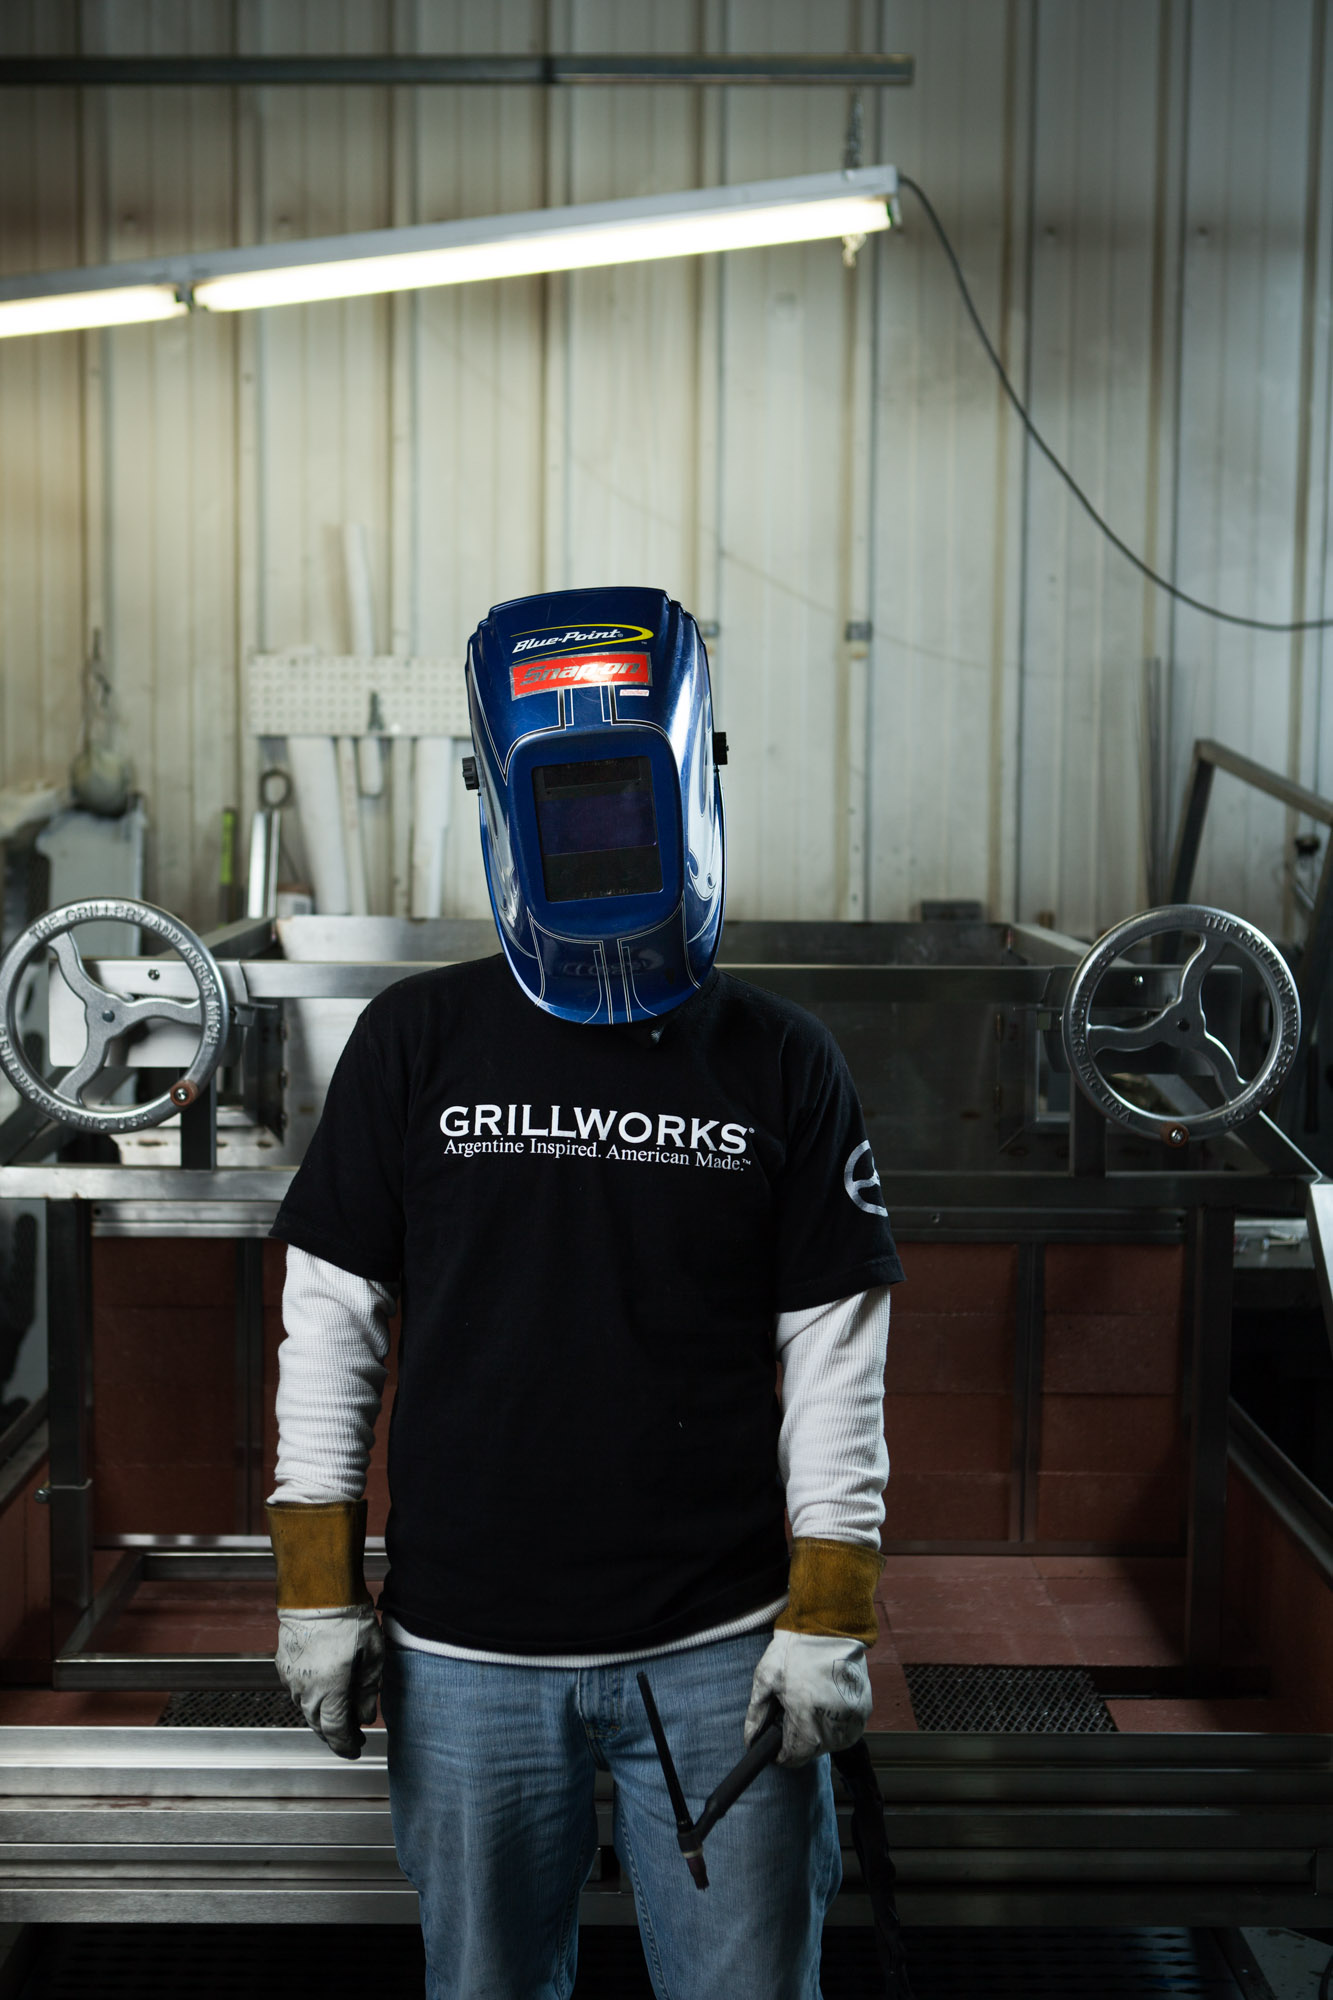 grillworks_7110